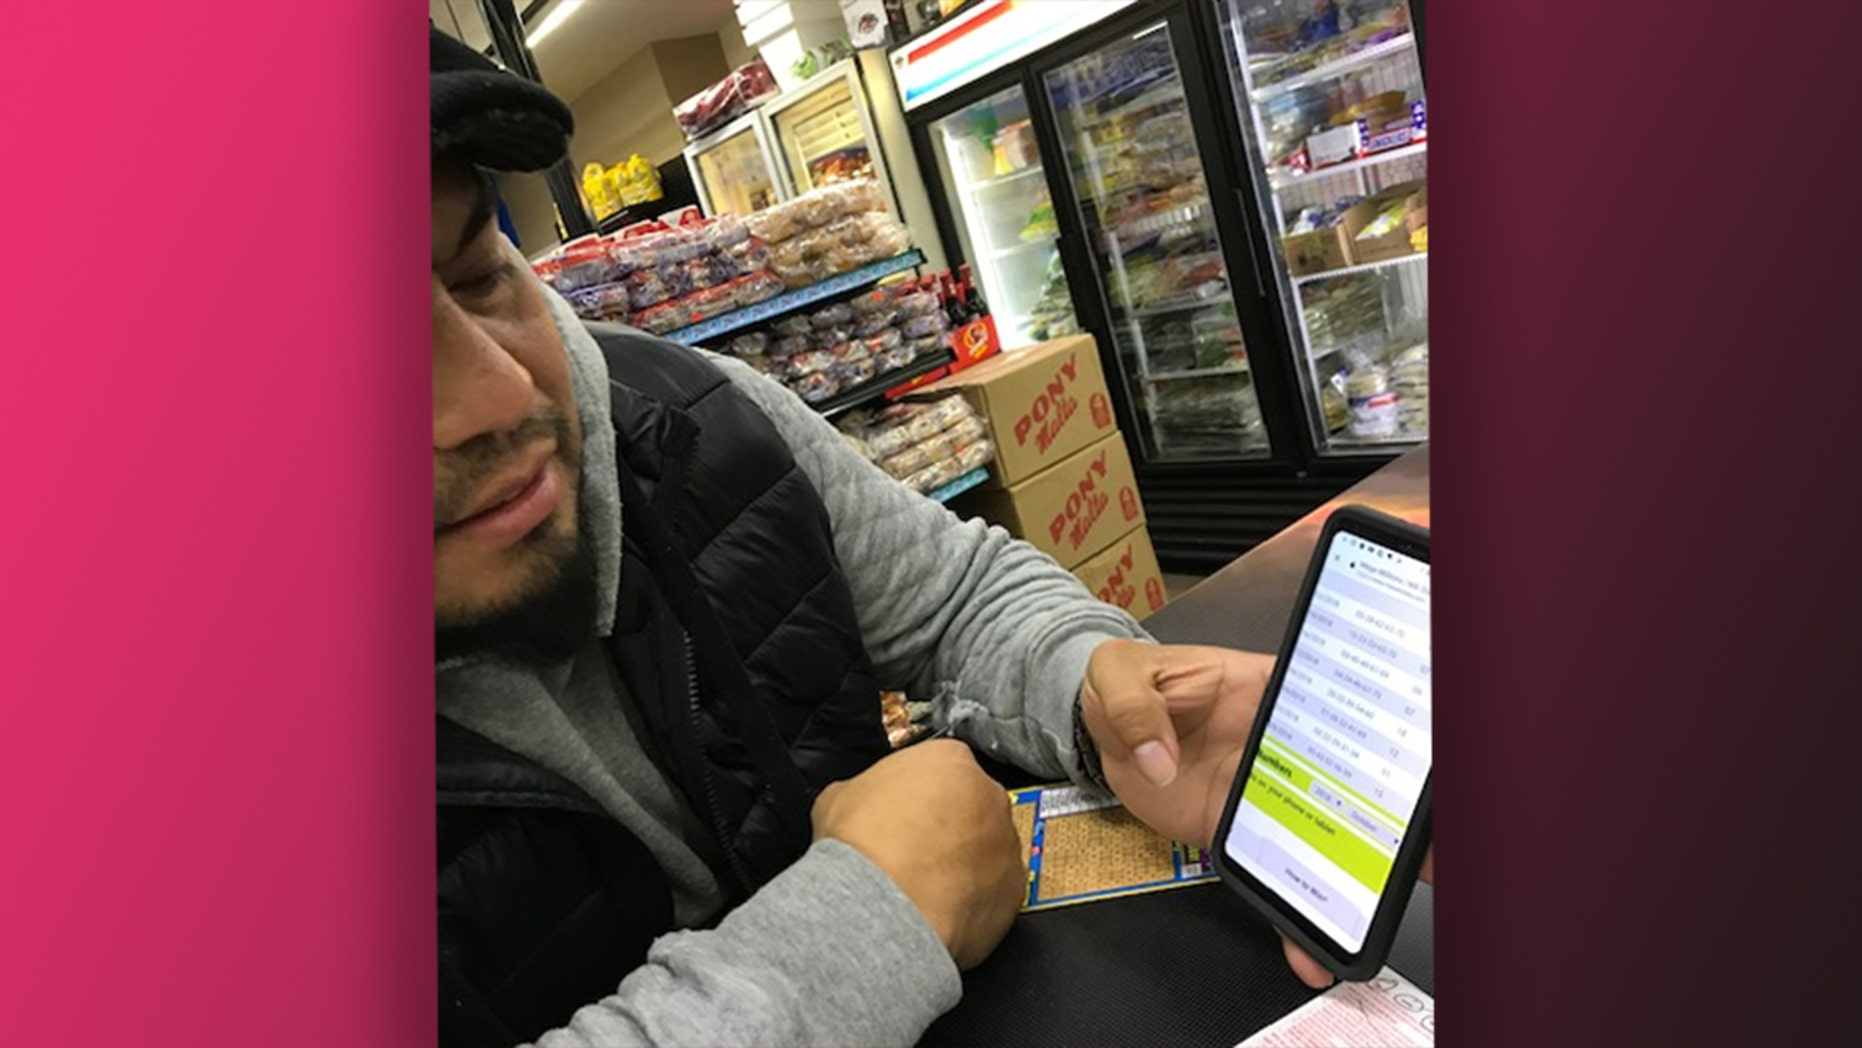 East Boston resident David Aguirre has on some days bought $100 worth of lottery tickets.